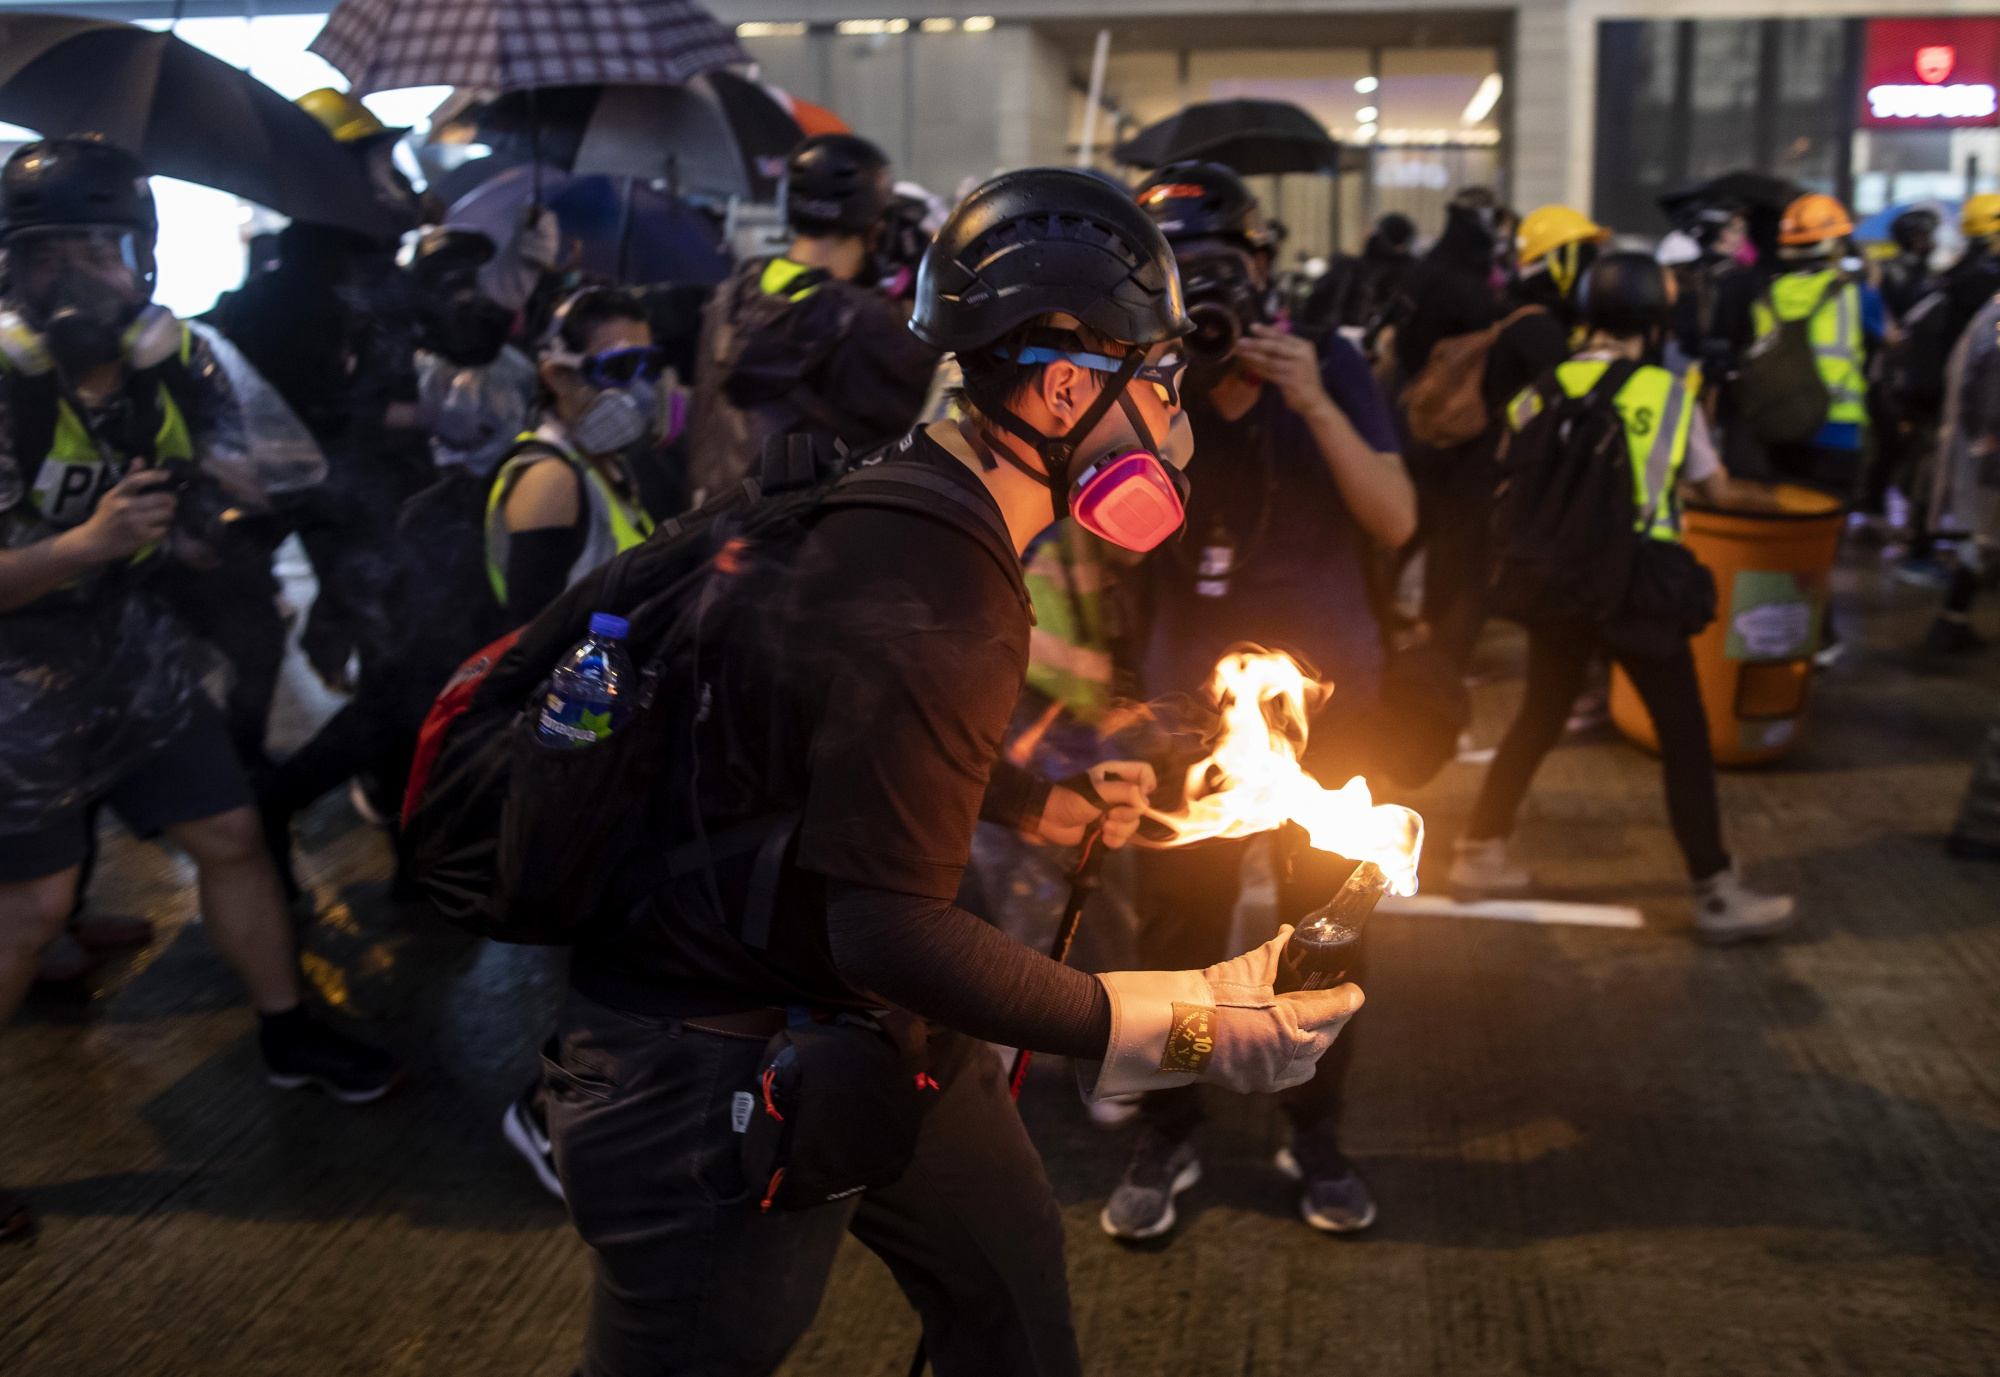 Hong Kong Masses Defy Police, Show China They're Ready to Fight